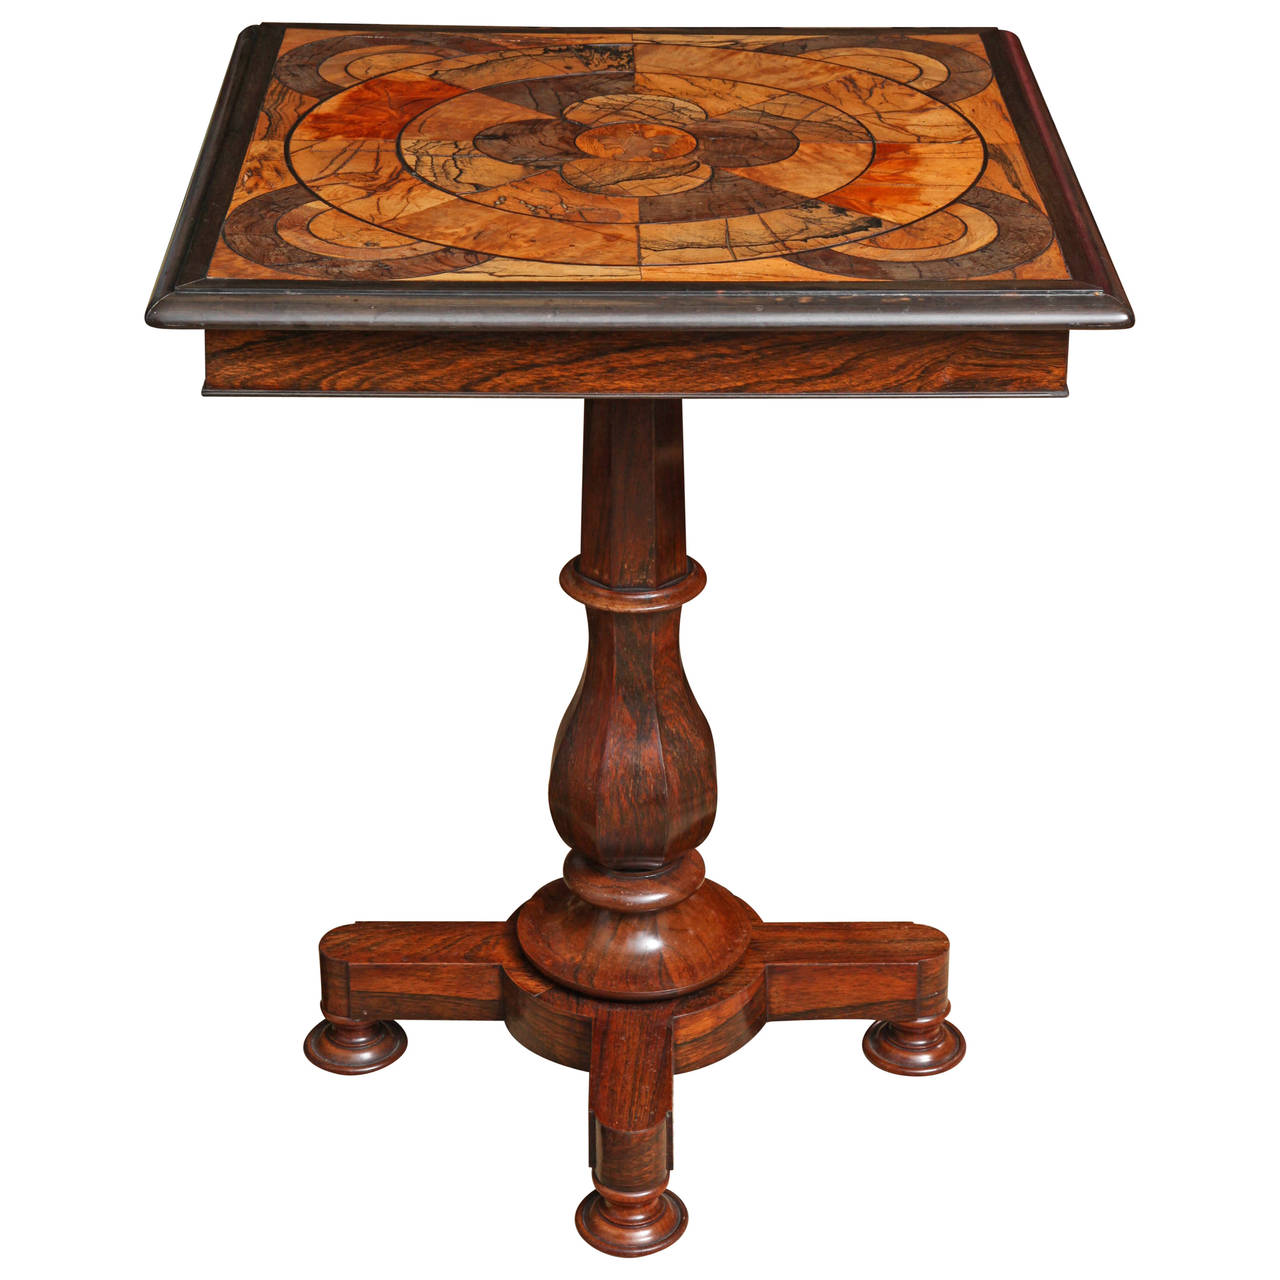 William IV Specimen Wood Table